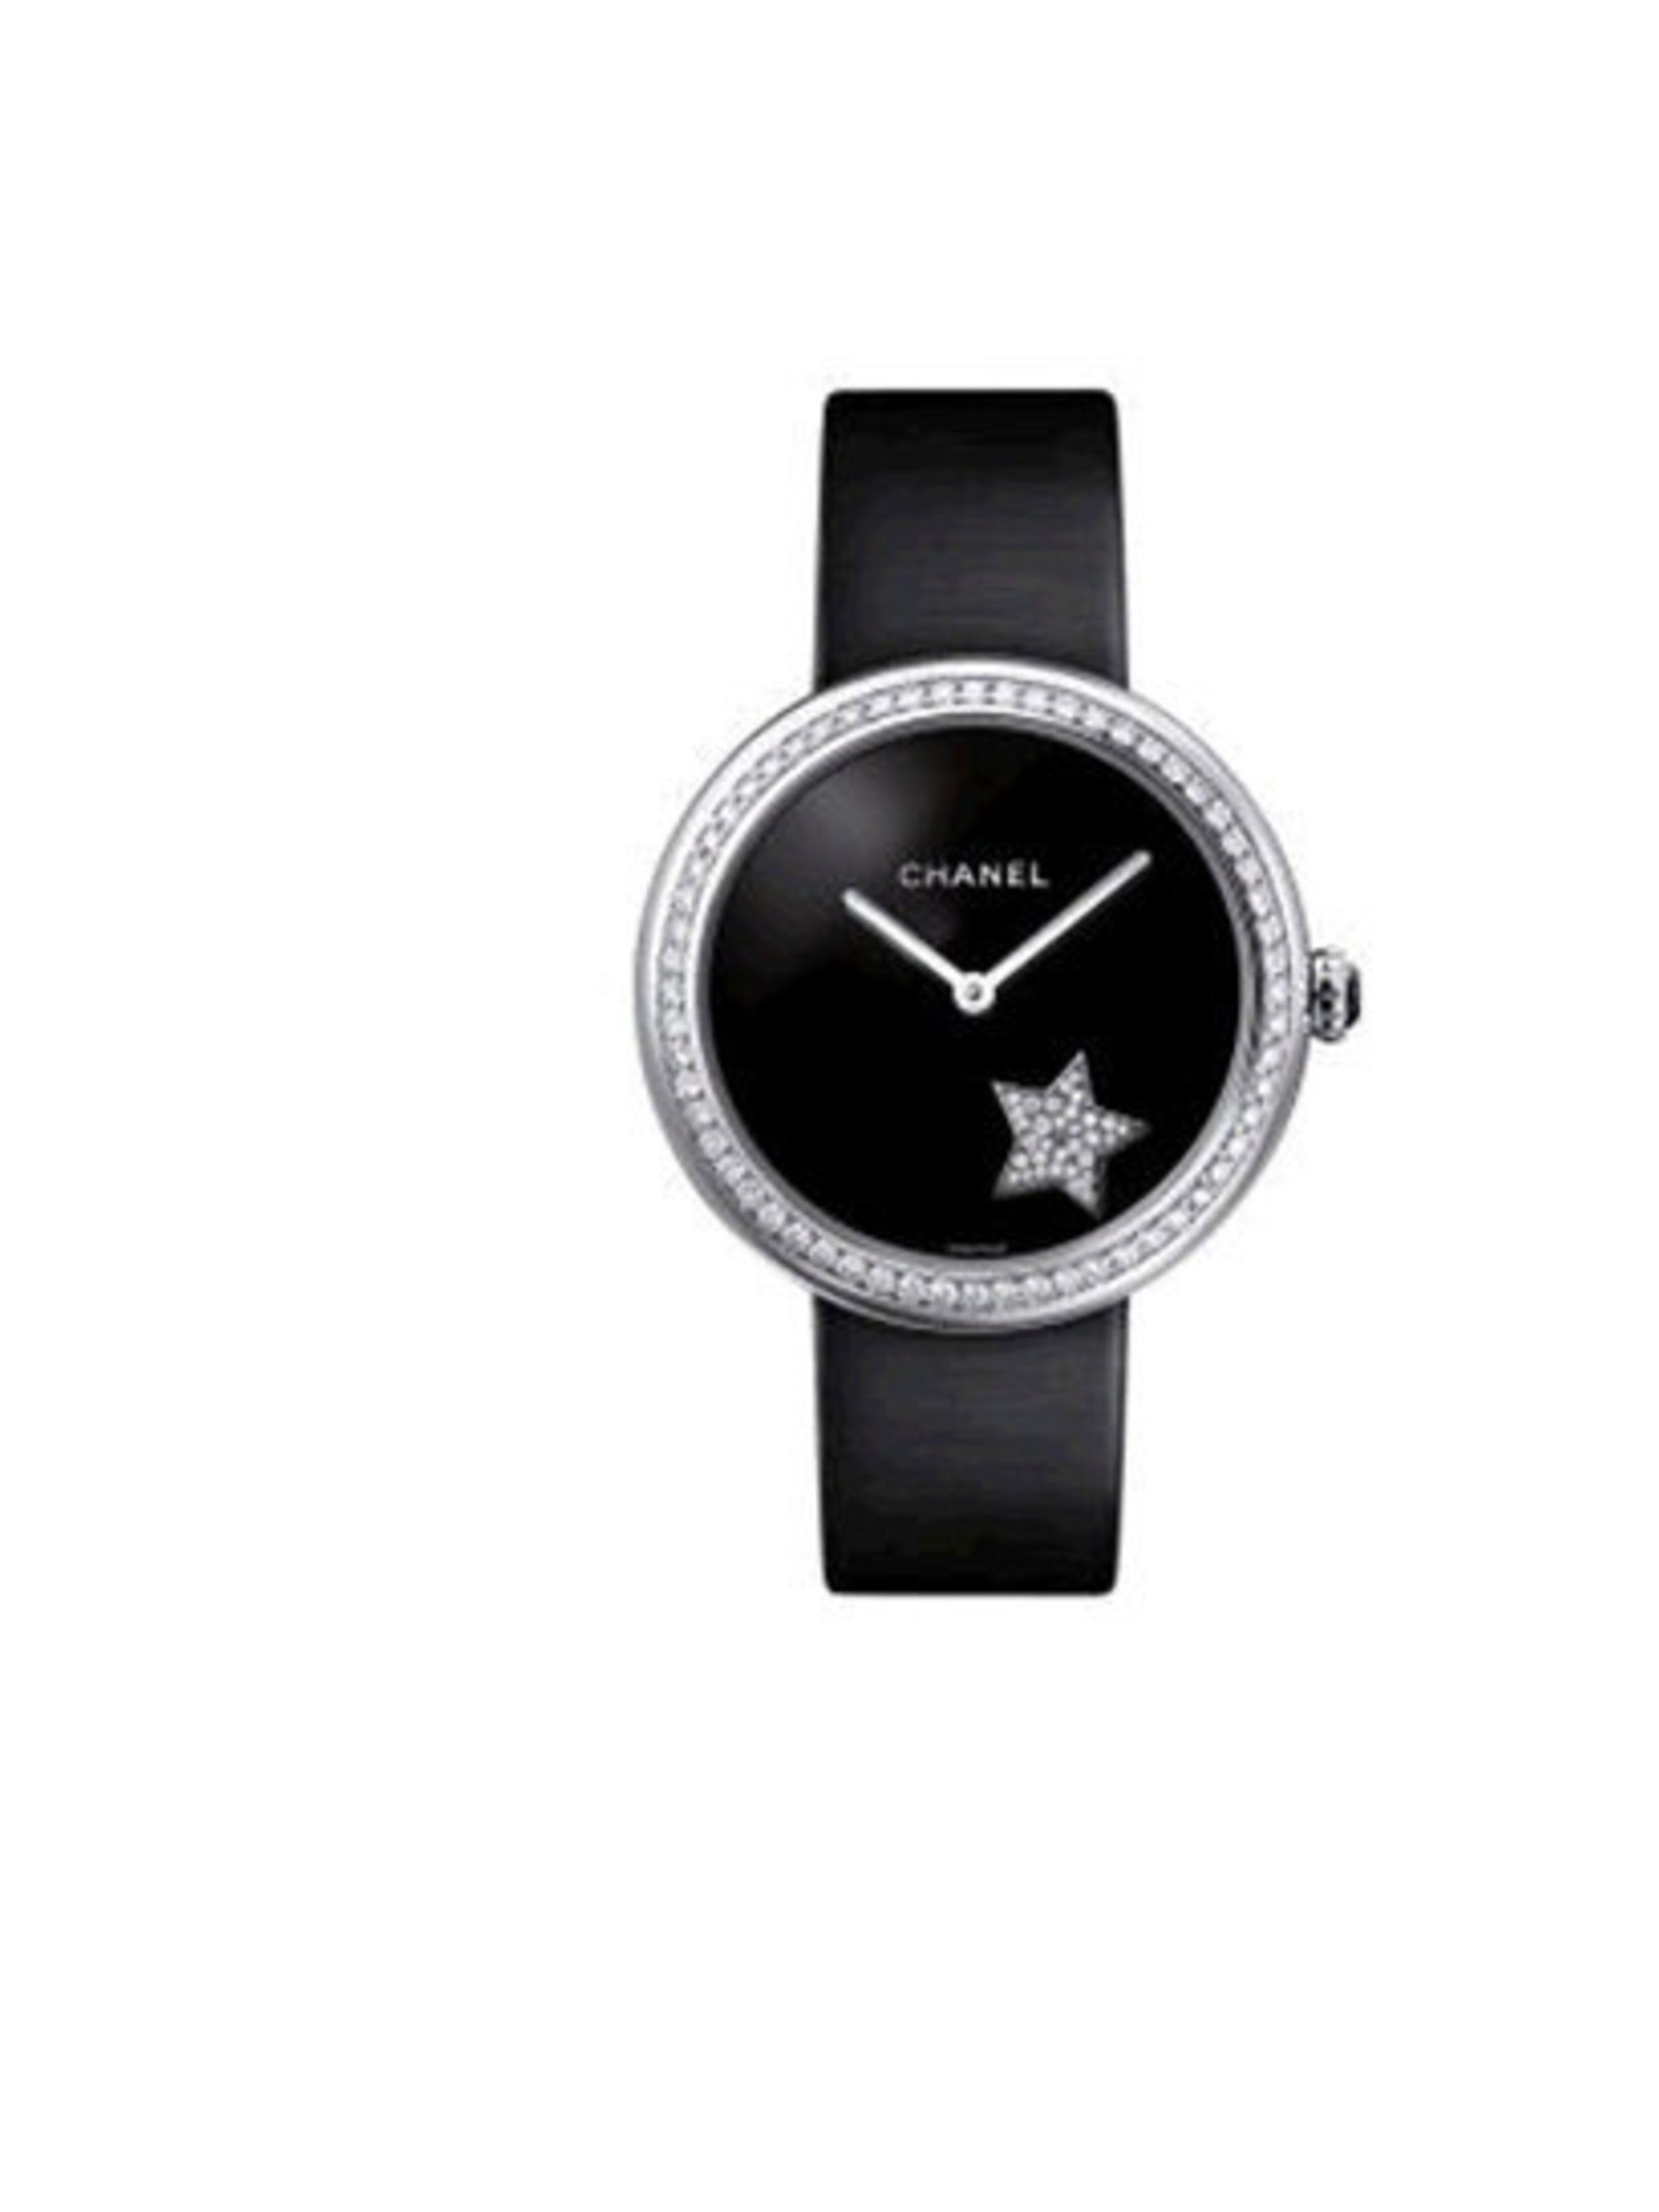 "<p>On the first day of Christmas my true love gave to me, a <a href=""http://www.chanel.com/en_GB/Watches/mademoiselle_prive"">Chanel Mademoiselle Privé</a>. Cased in 18K white gold and twinkling with a total of 171 brilliant cut diamonds, wrists sparkle li"